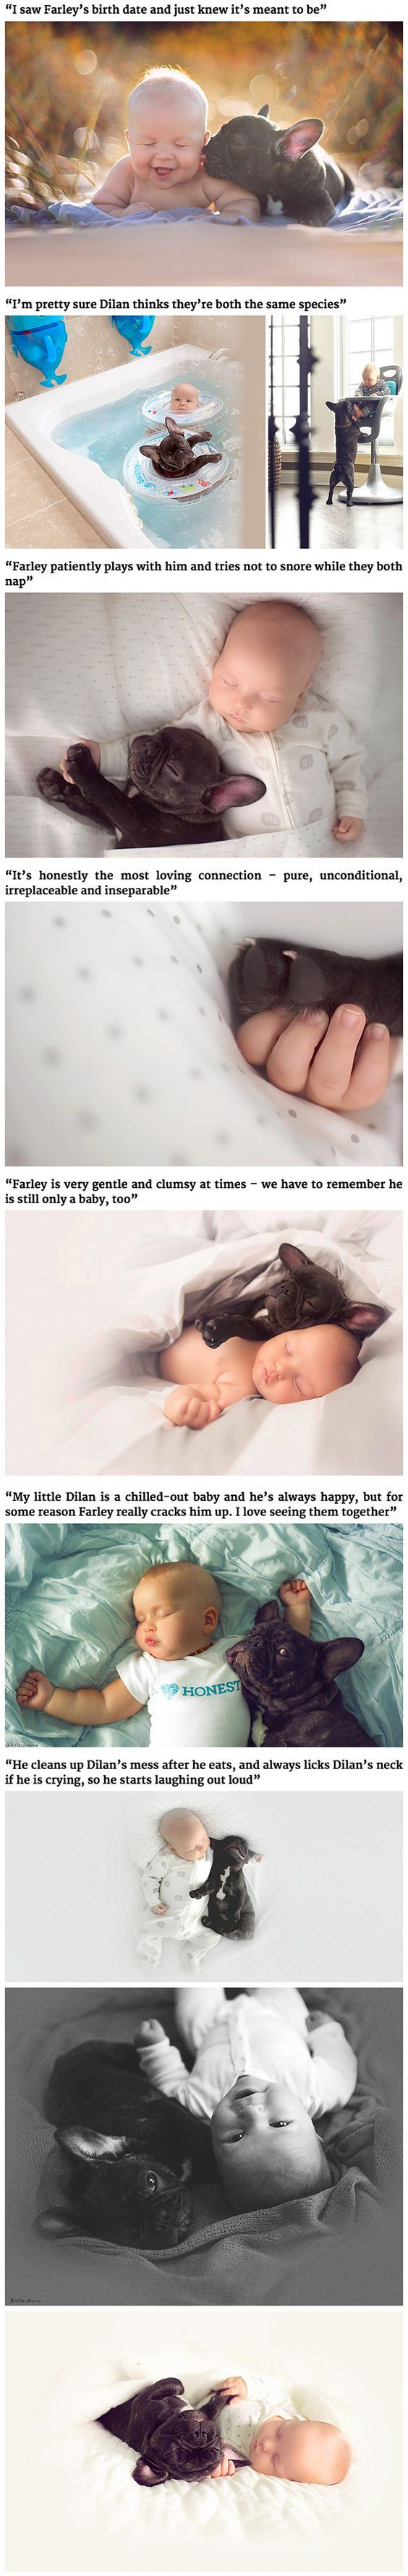 """Dog's are often called """"man's best friend,"""" but what about babies? When Chicago mother Ivette Ivens, 25, saw a French bulldog puppy that was born on the same day as her baby son Dilan, she knew it was a sign. """"I saw Farley's birth date and just knew it's meant to be,"""" she told the Daily Mail."""